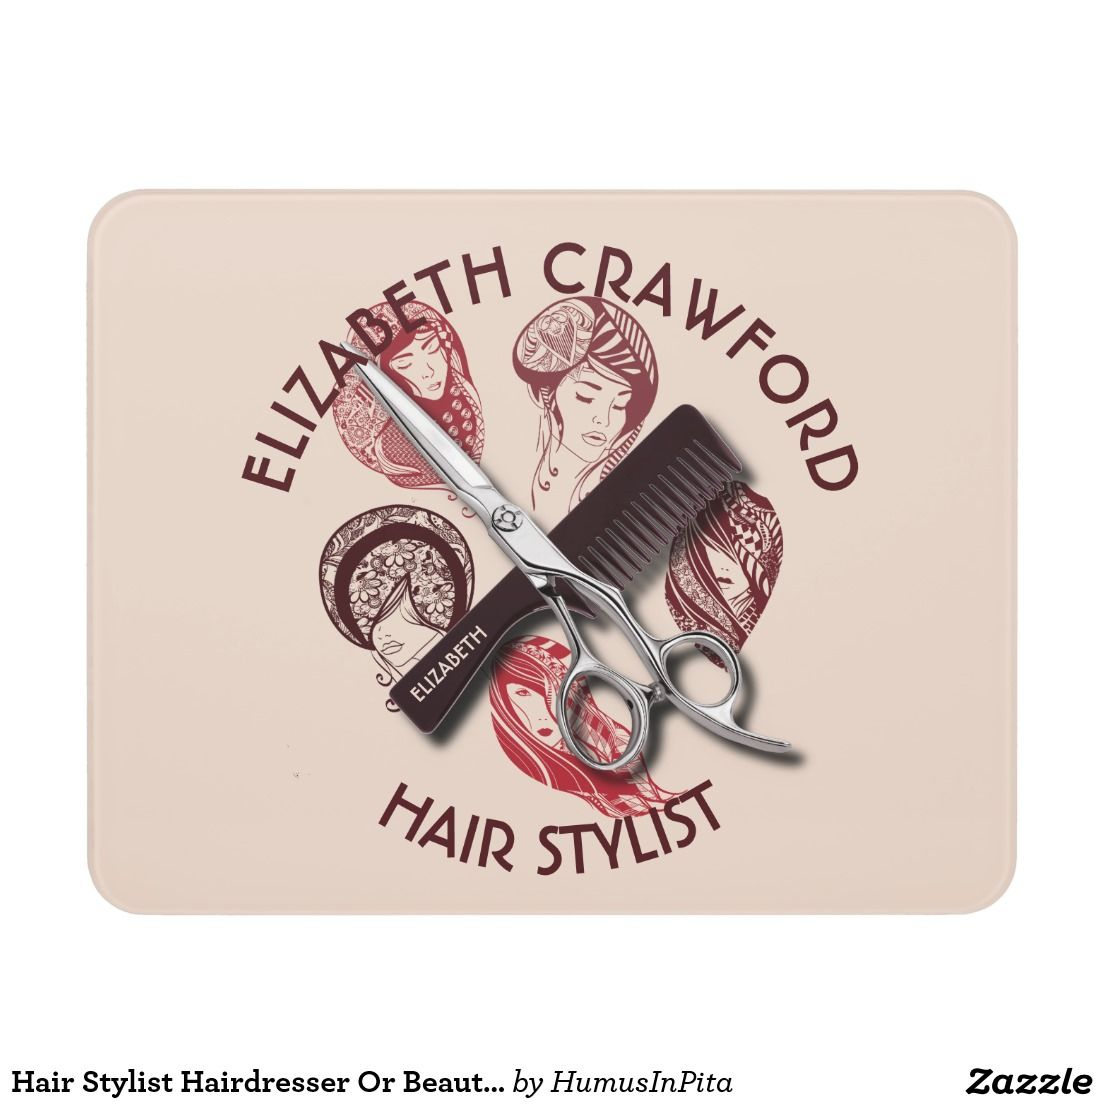 Hair Stylist Hairdresser Or Beauty Salon With Name Door Sign